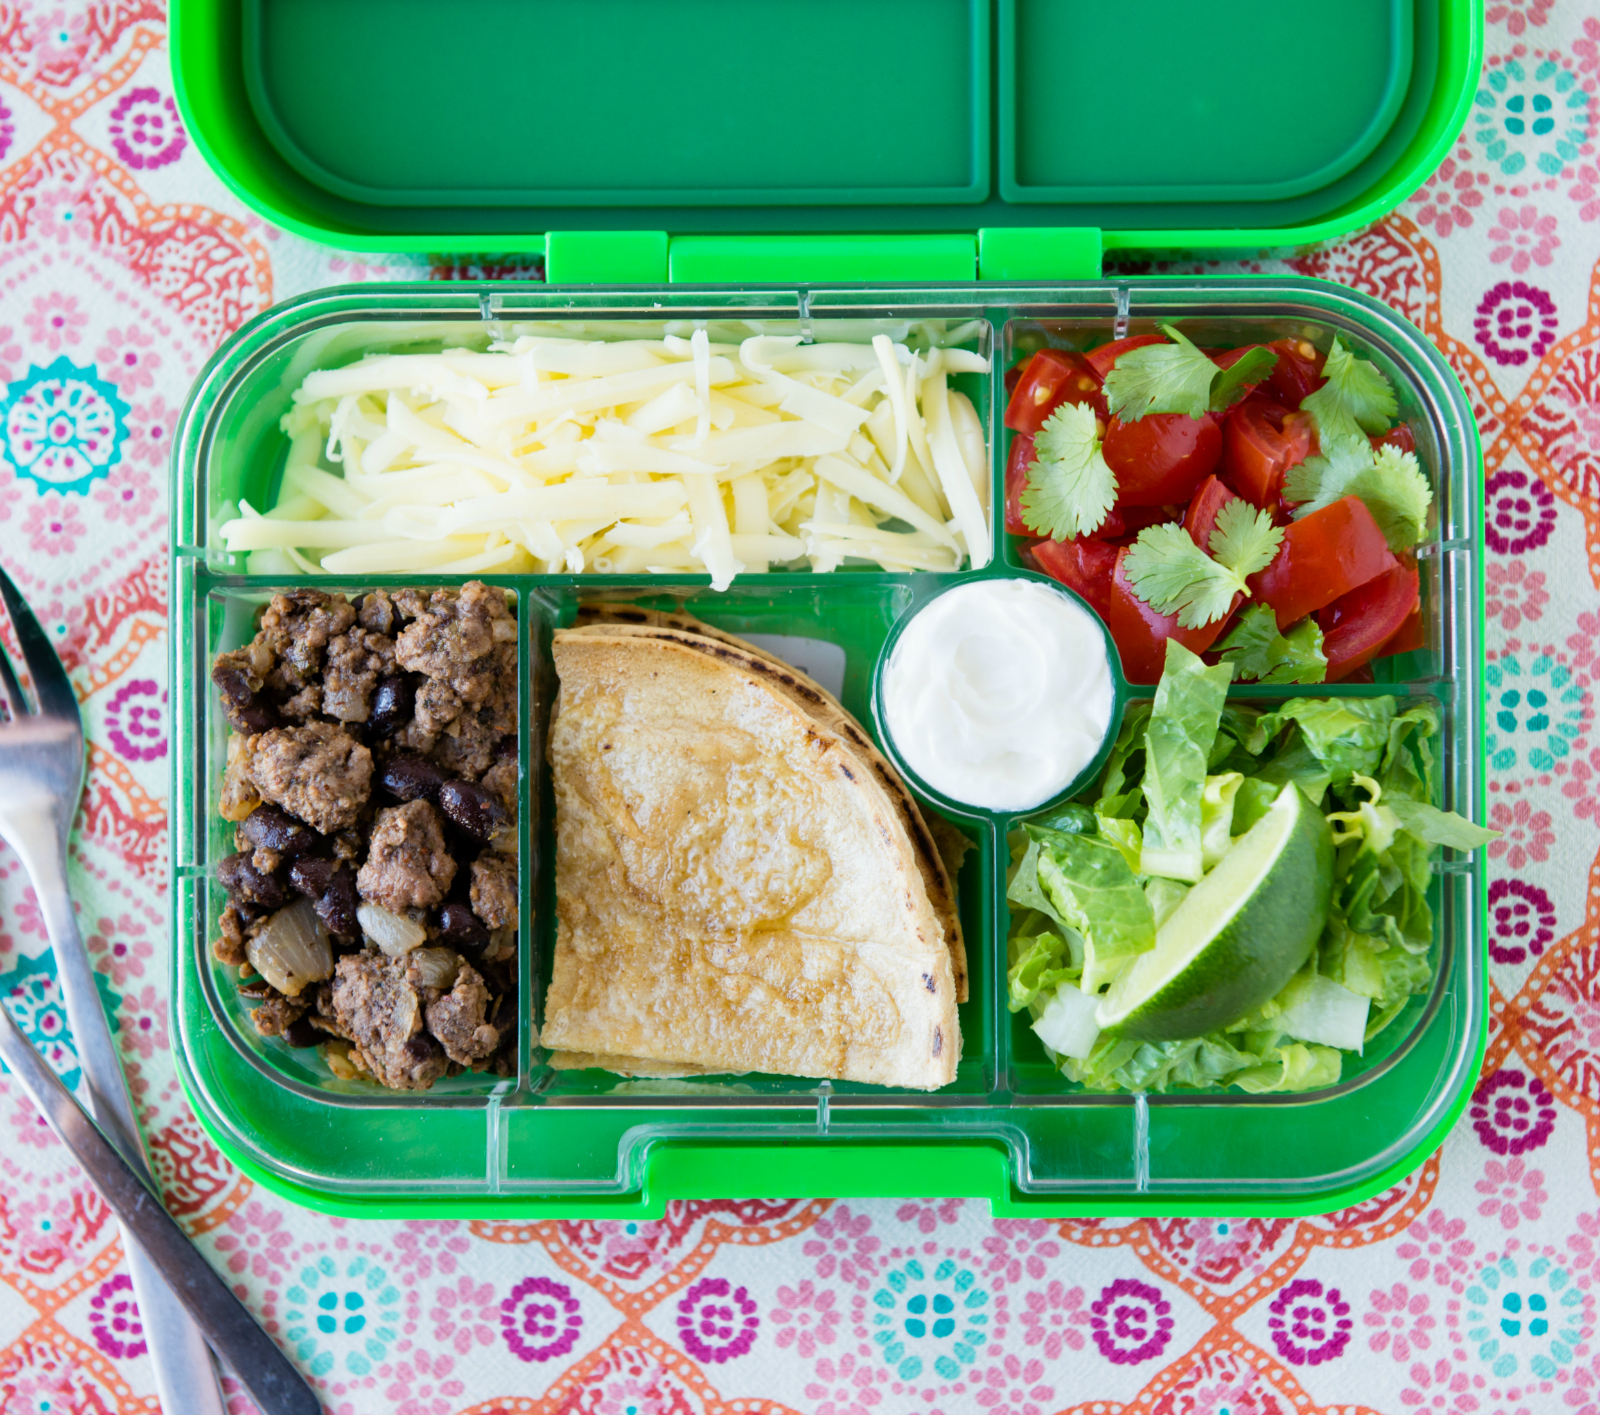 Leftover taco salad in lunchbox